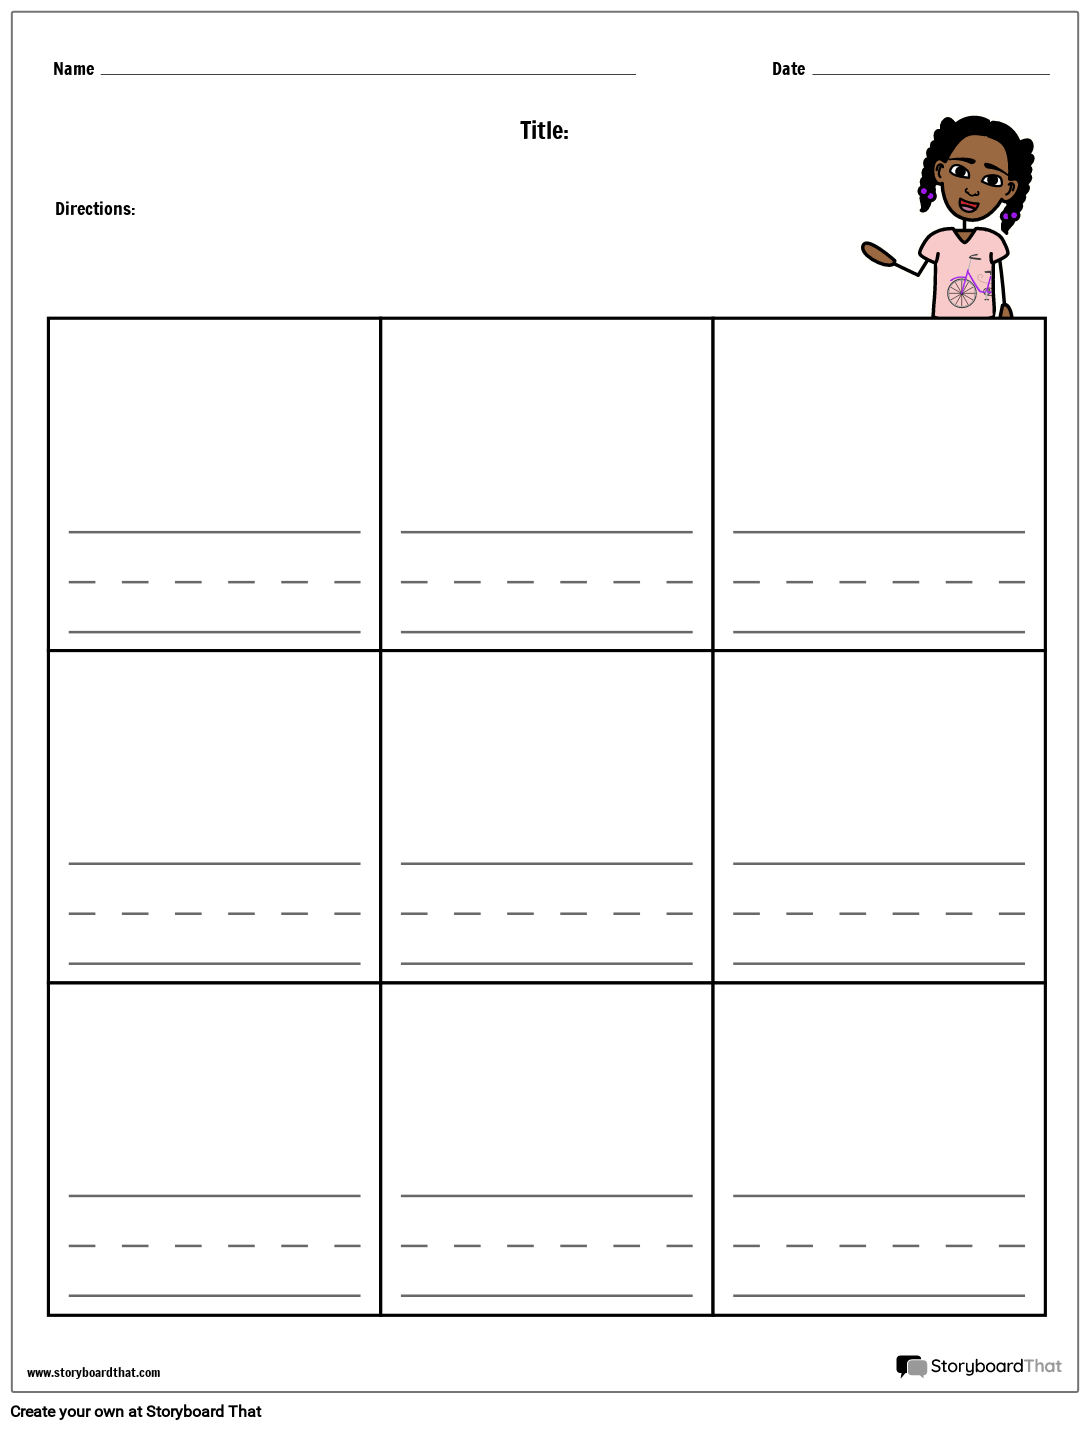 Writing Practice Template from cdn.storyboardthat.com